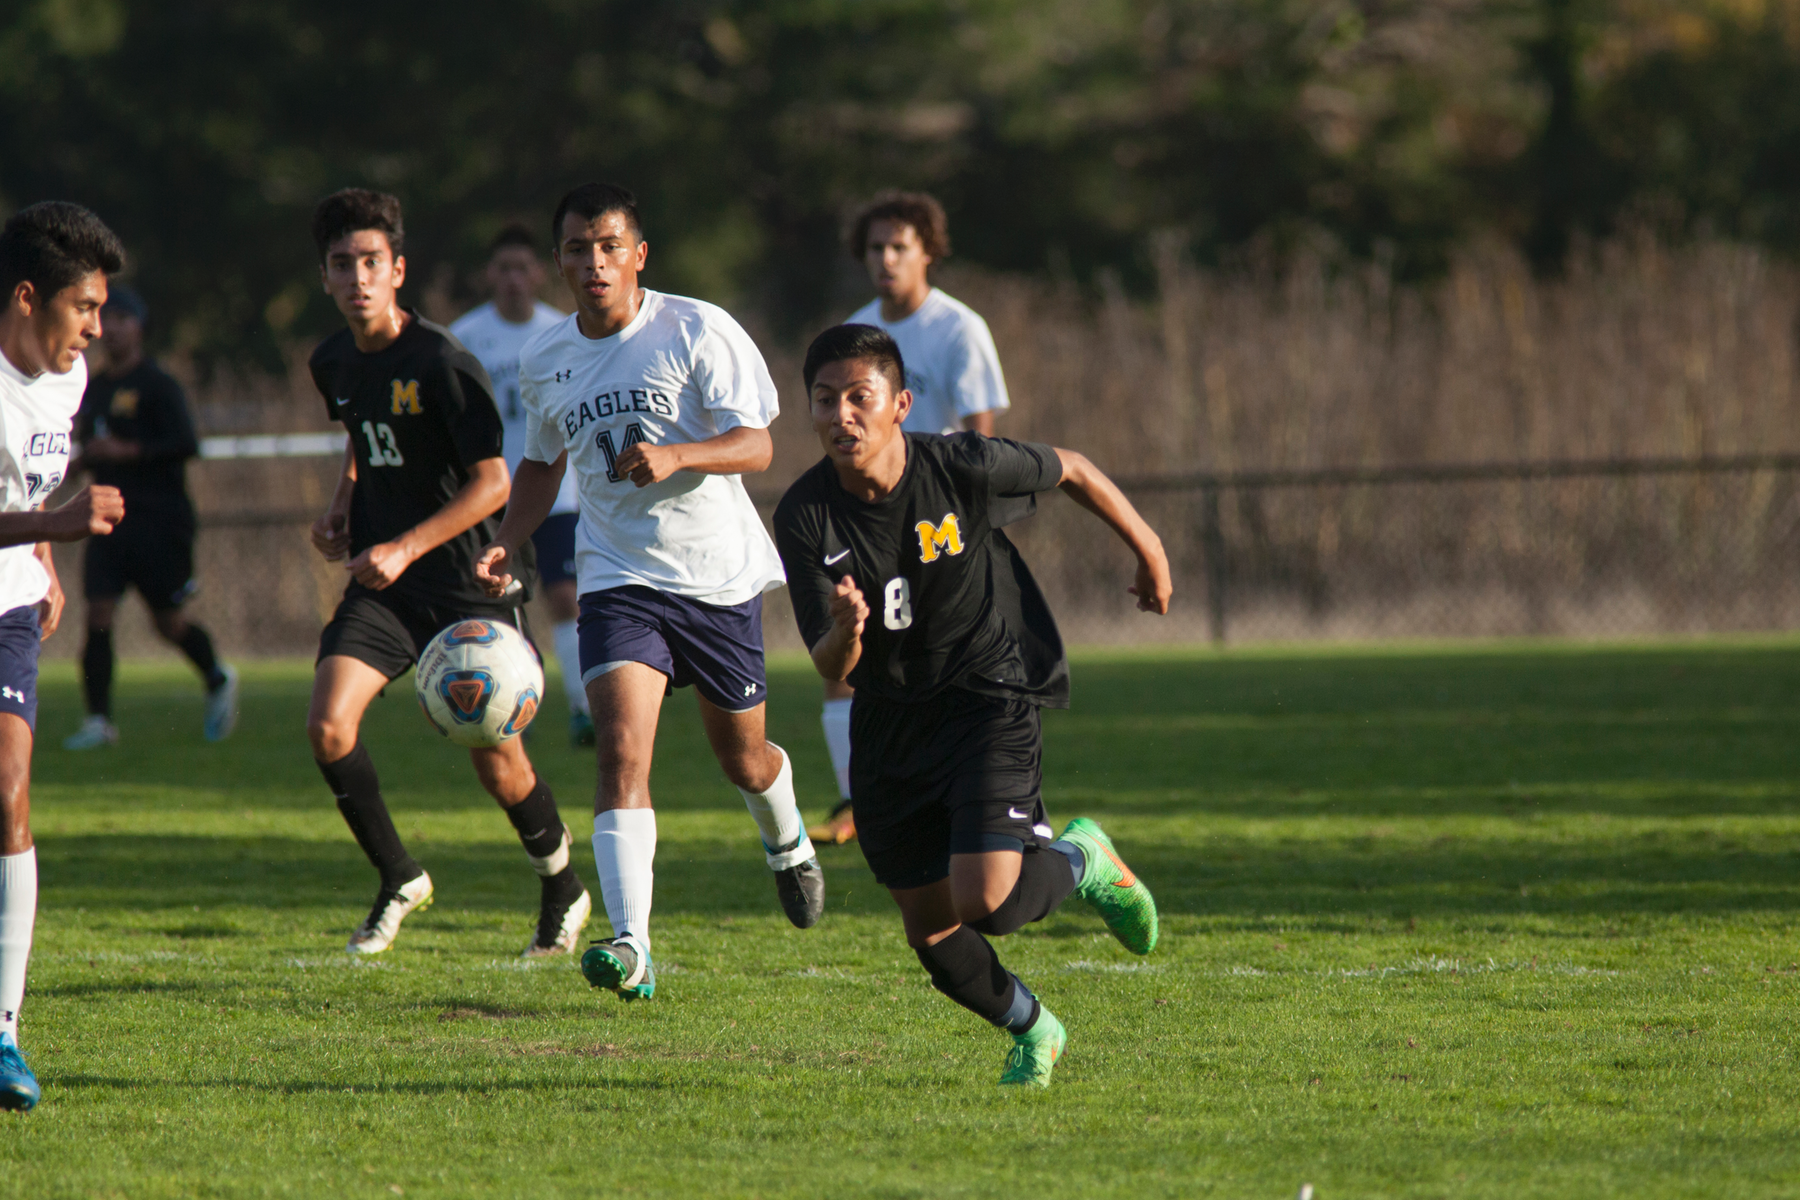 COM Men's Soccer's Offense Struggles In 3-0 Loss To Napa Valley College